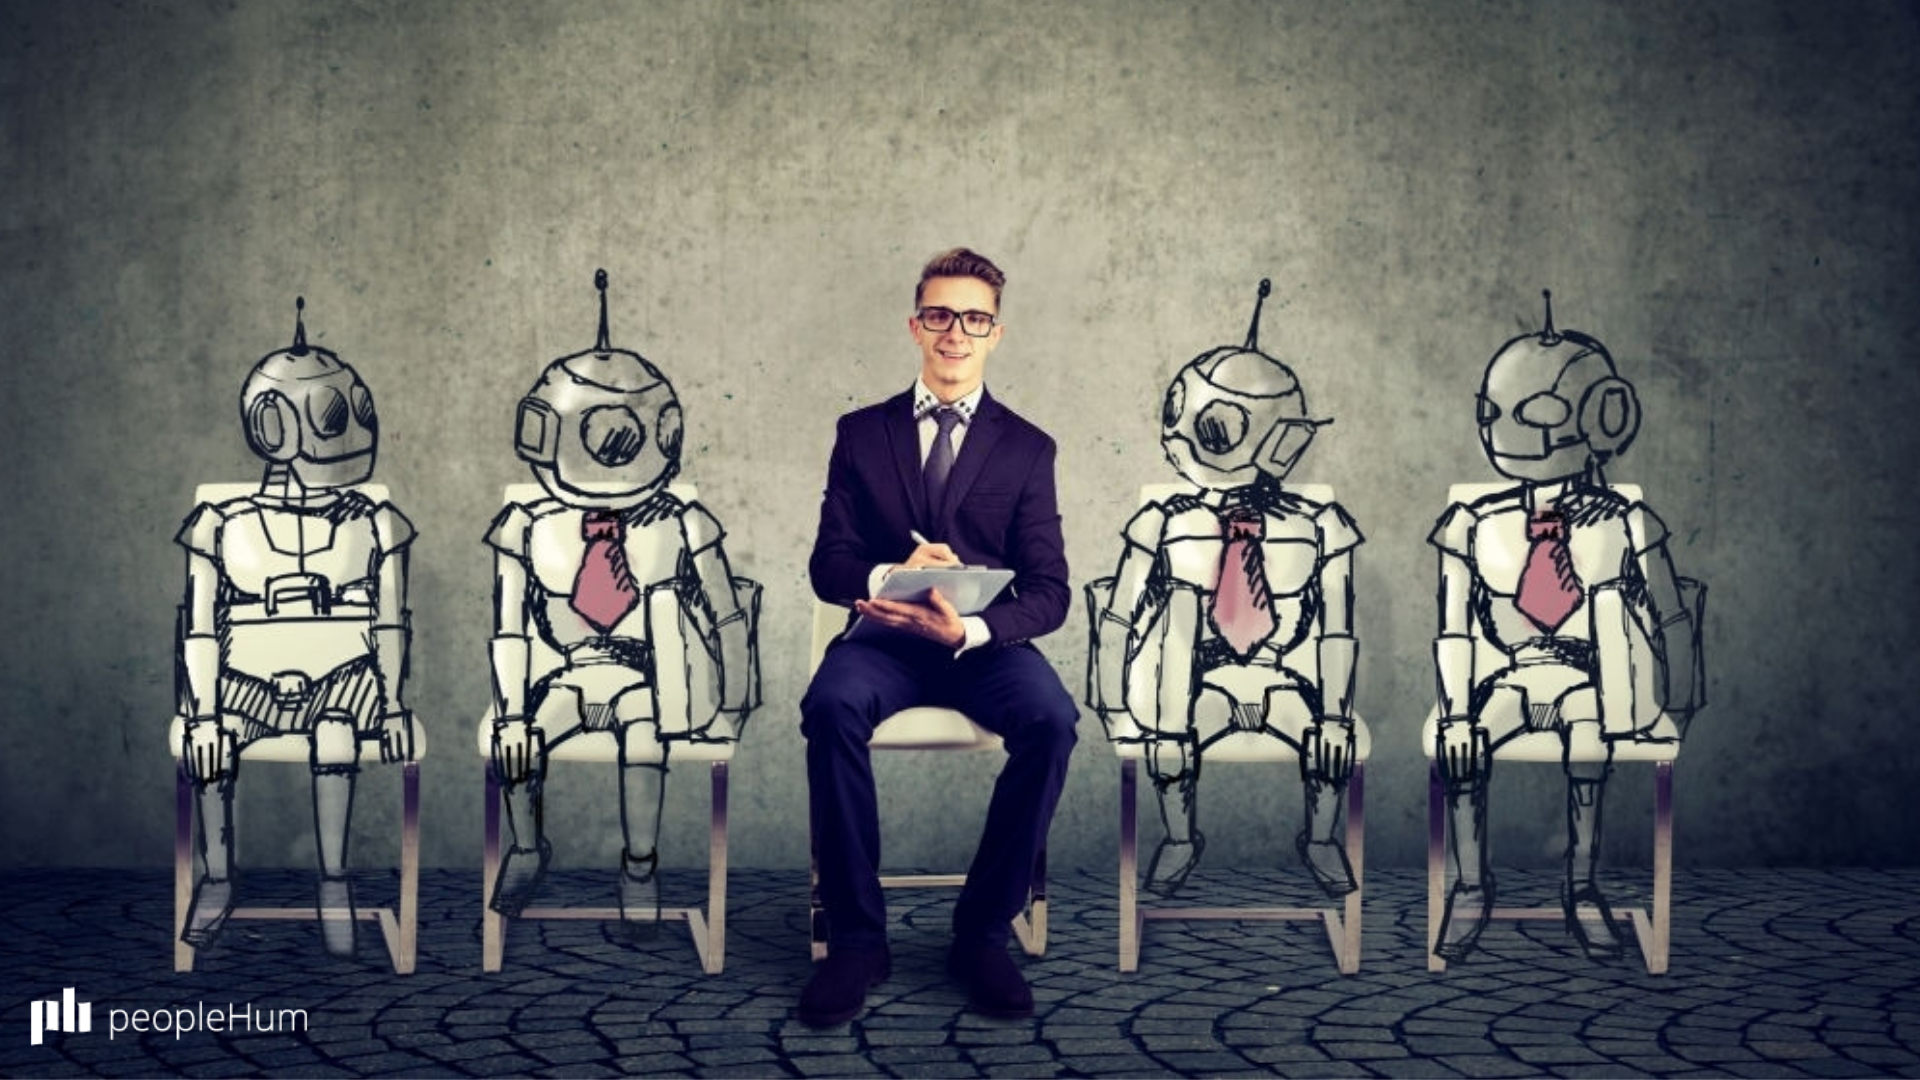 Robots will replace massively humans in the next 10 years